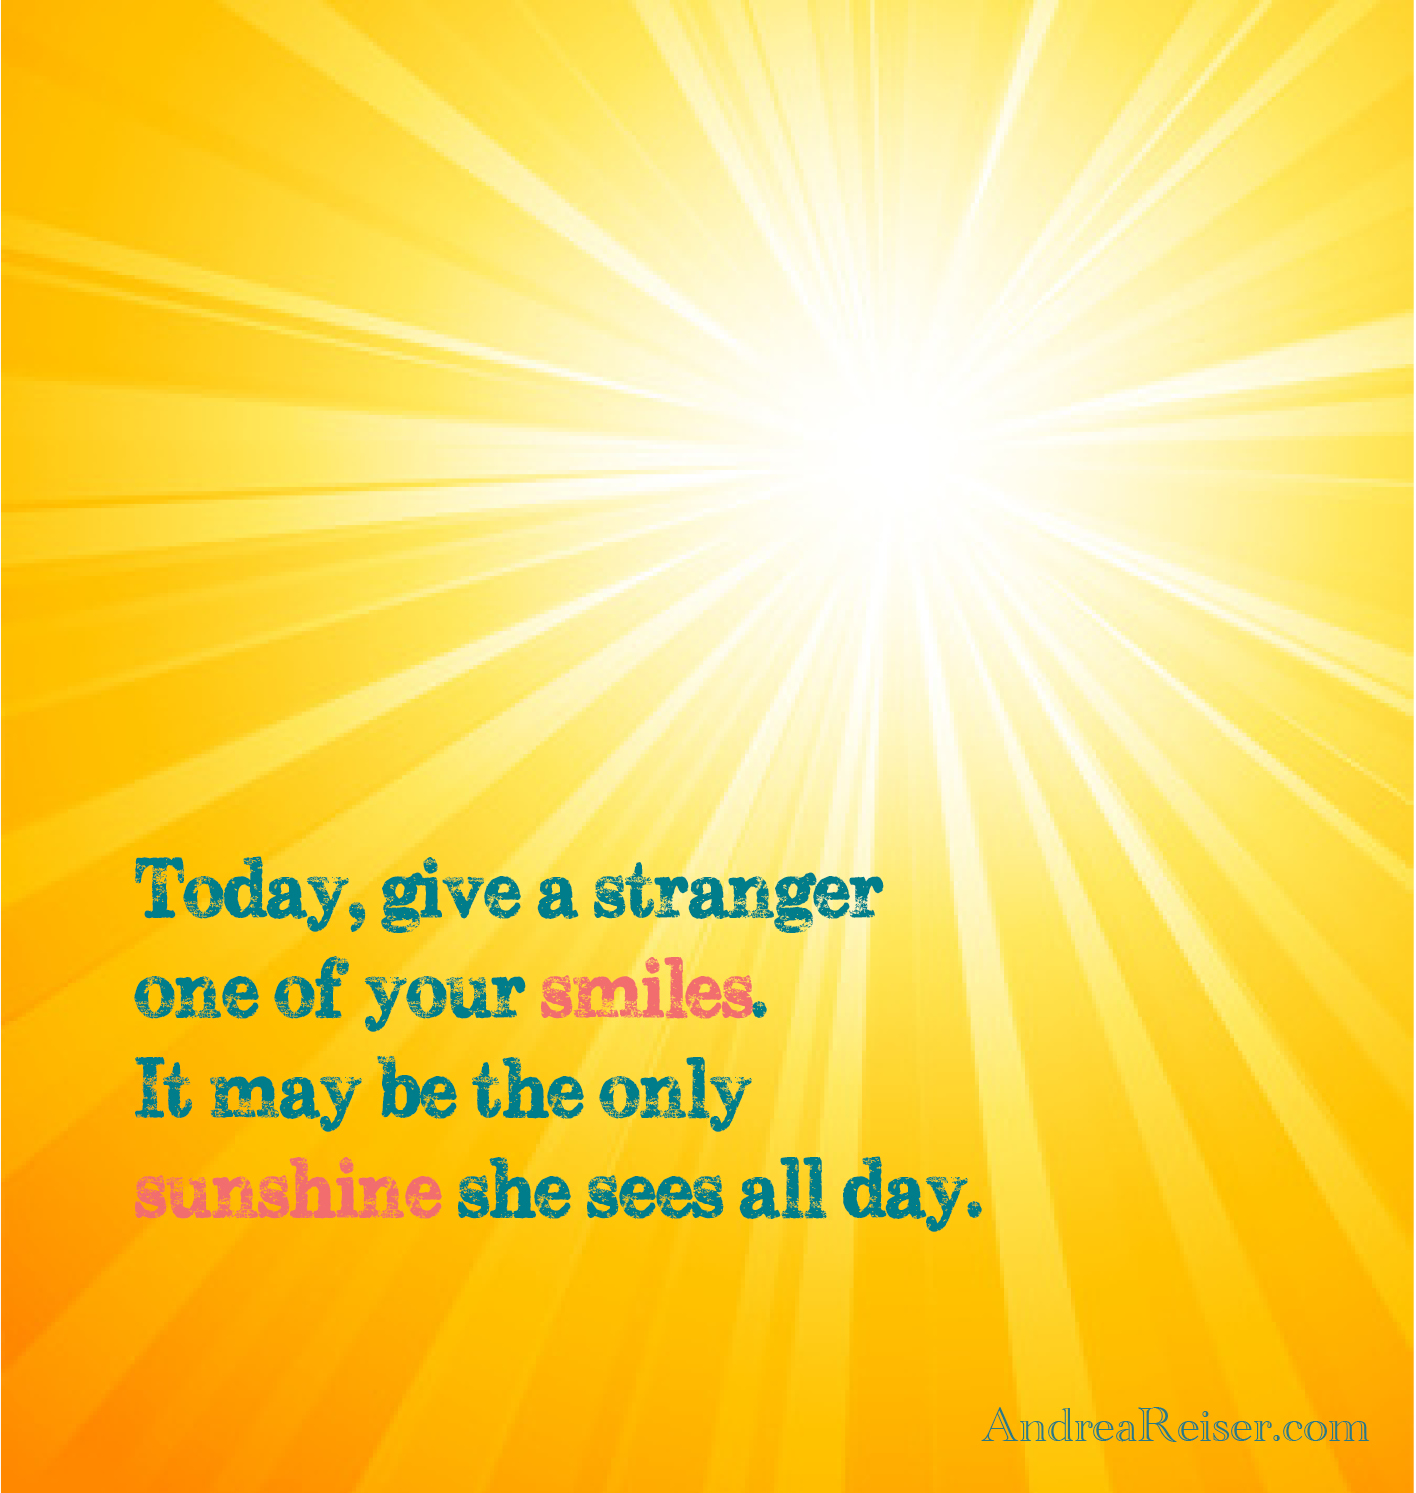 Give a Stranger One Of Your Smiles - Andrea Reiser Andrea ...